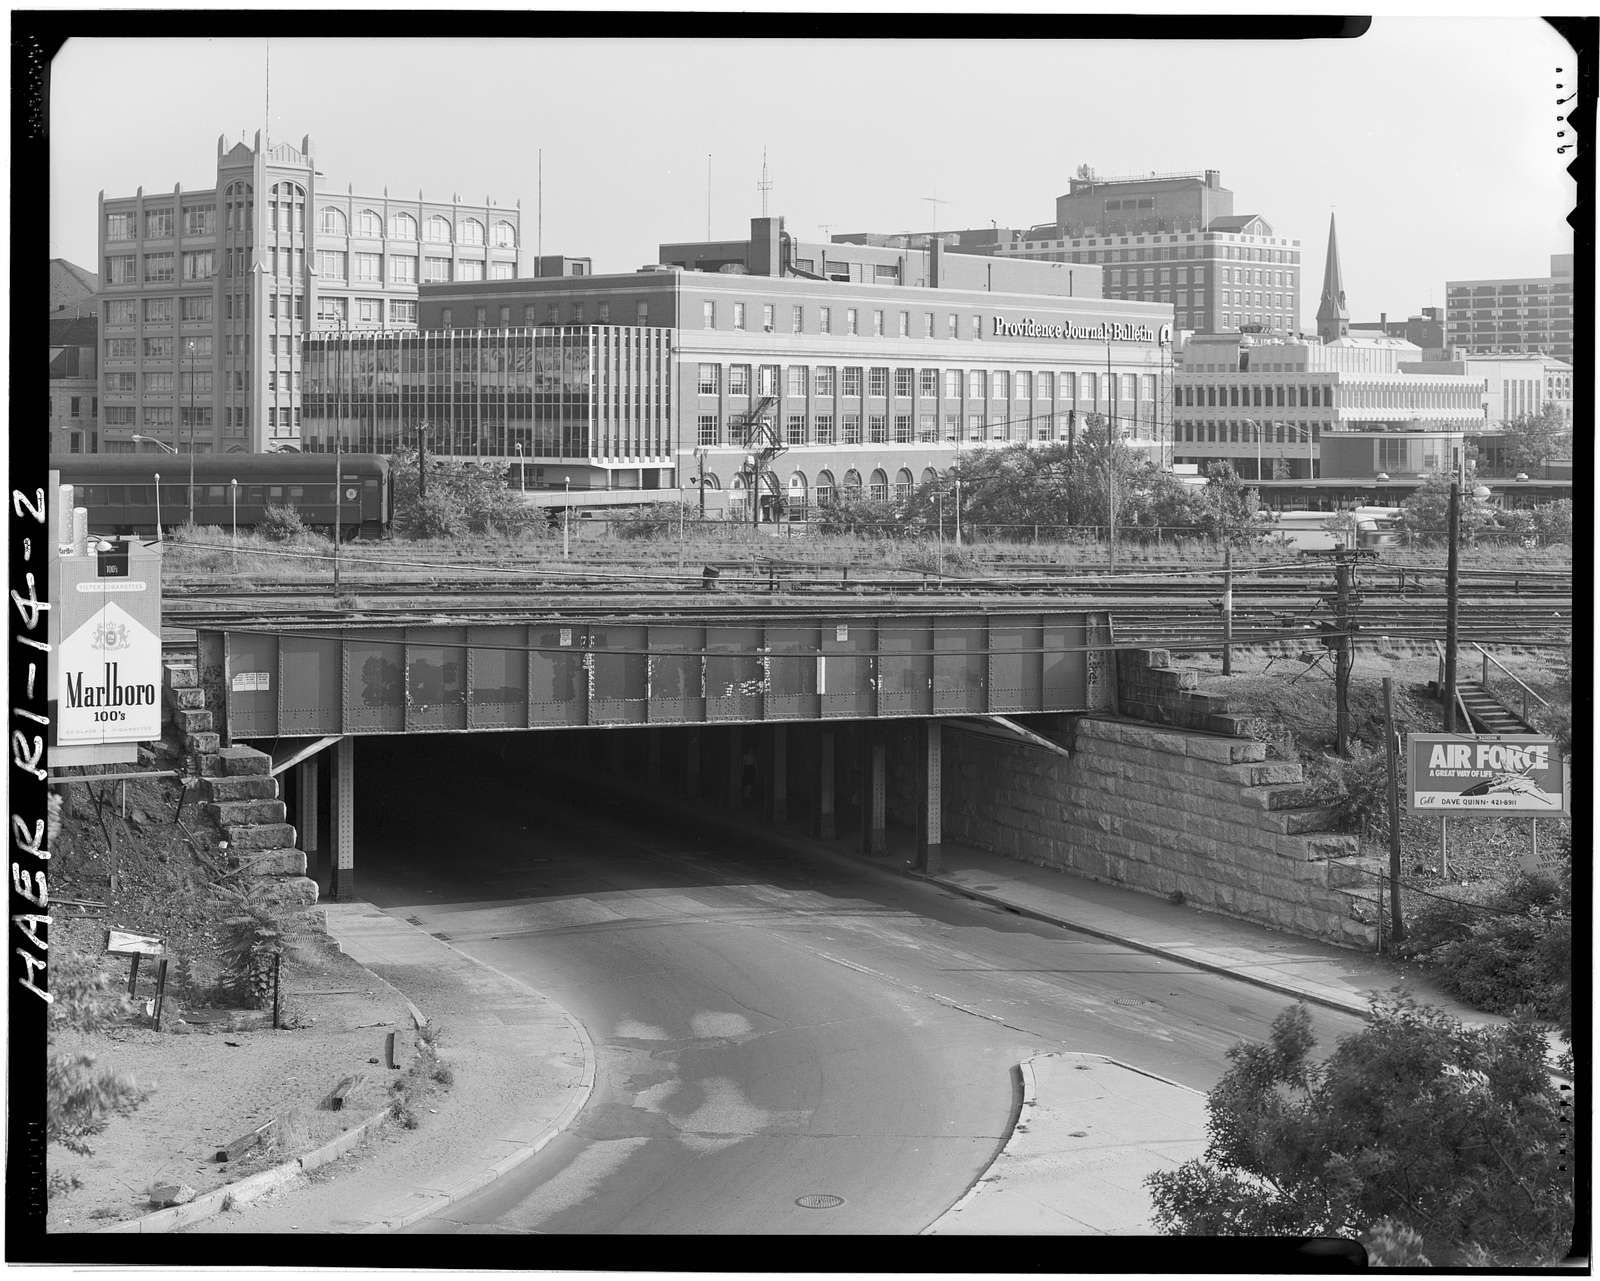 Union Station Viaduct, Spanning Gaspee, Francis, Promenade & Canal Streets, Providence, Providence County, RI